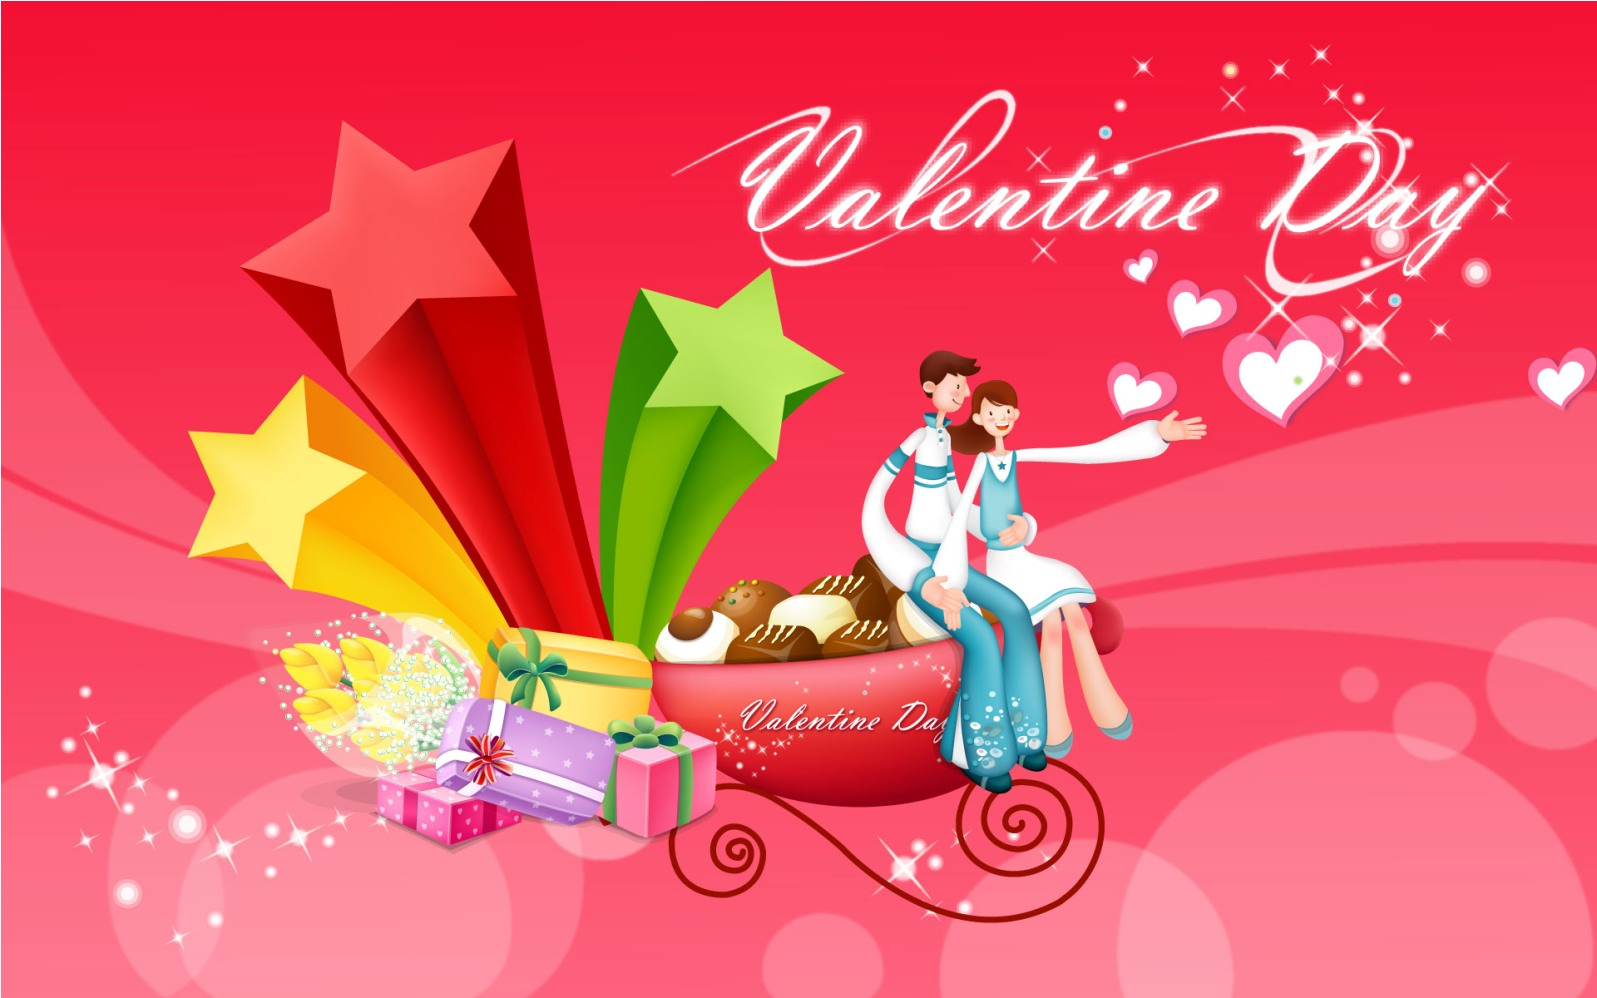 Actress Puppy Christmas Pictures Wallpaper 3D Photos Free Download Valentines Day